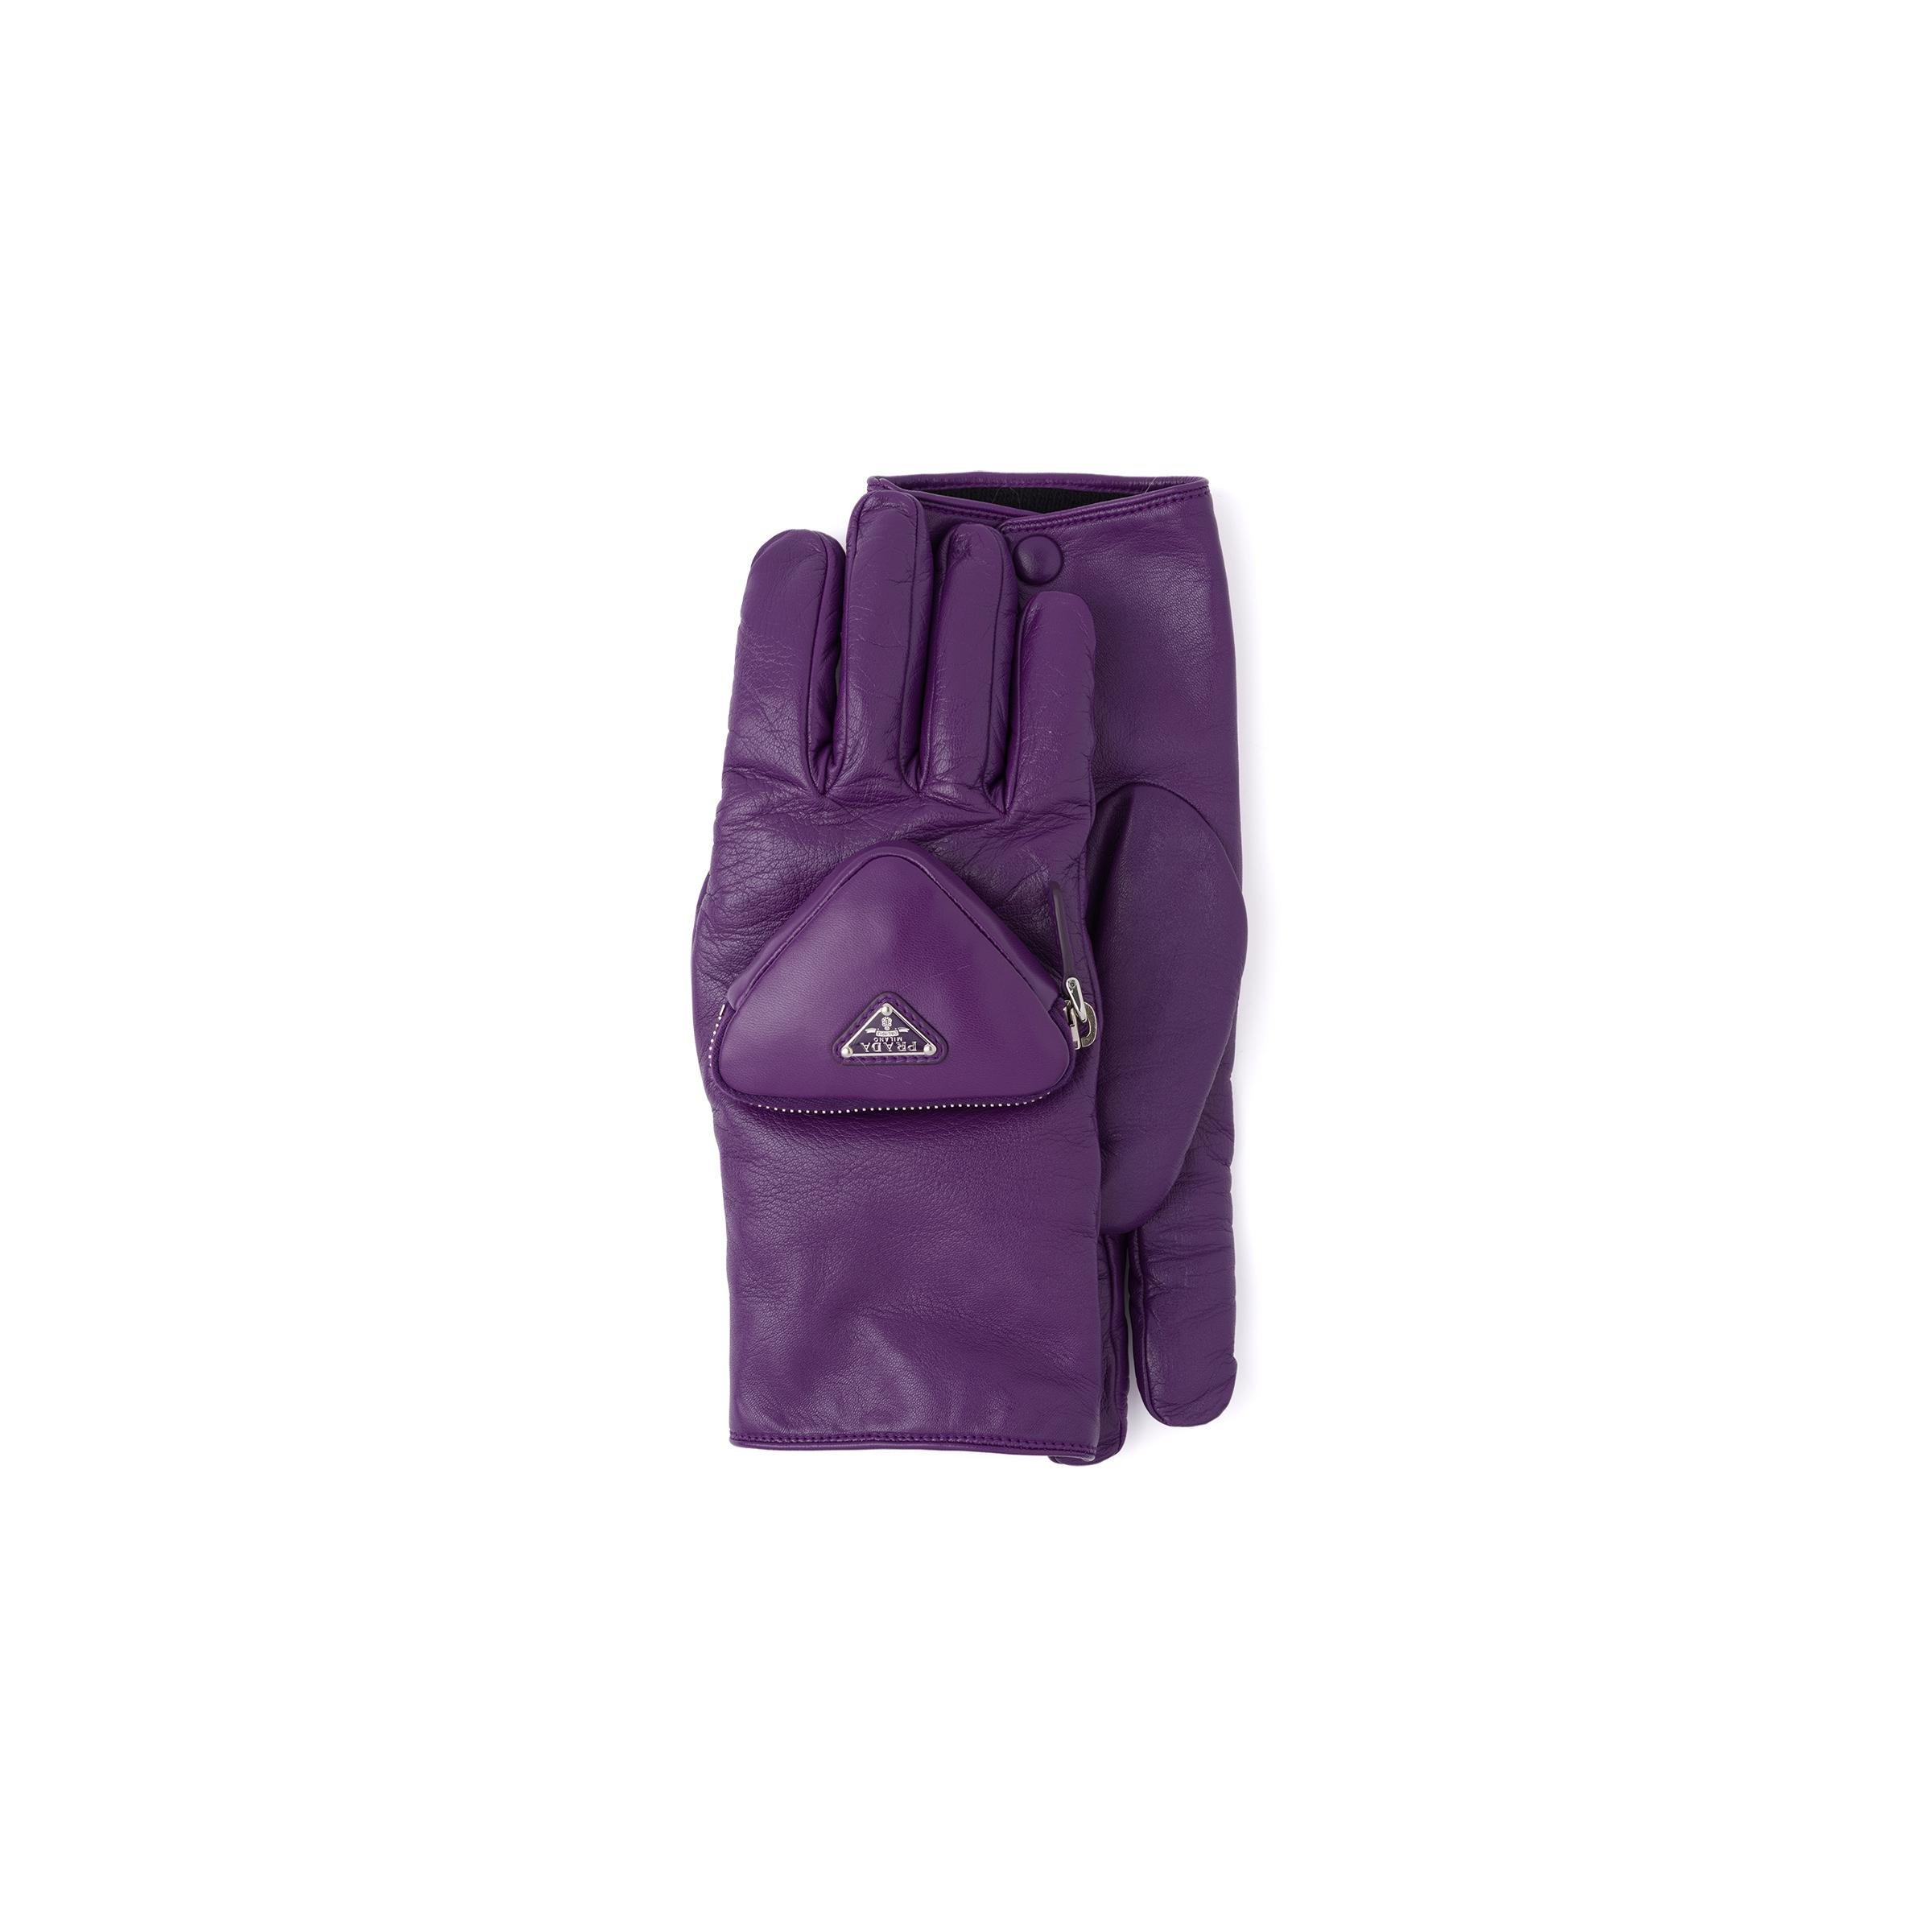 Nappa Leather Gloves With Pouch Women Cyclamen